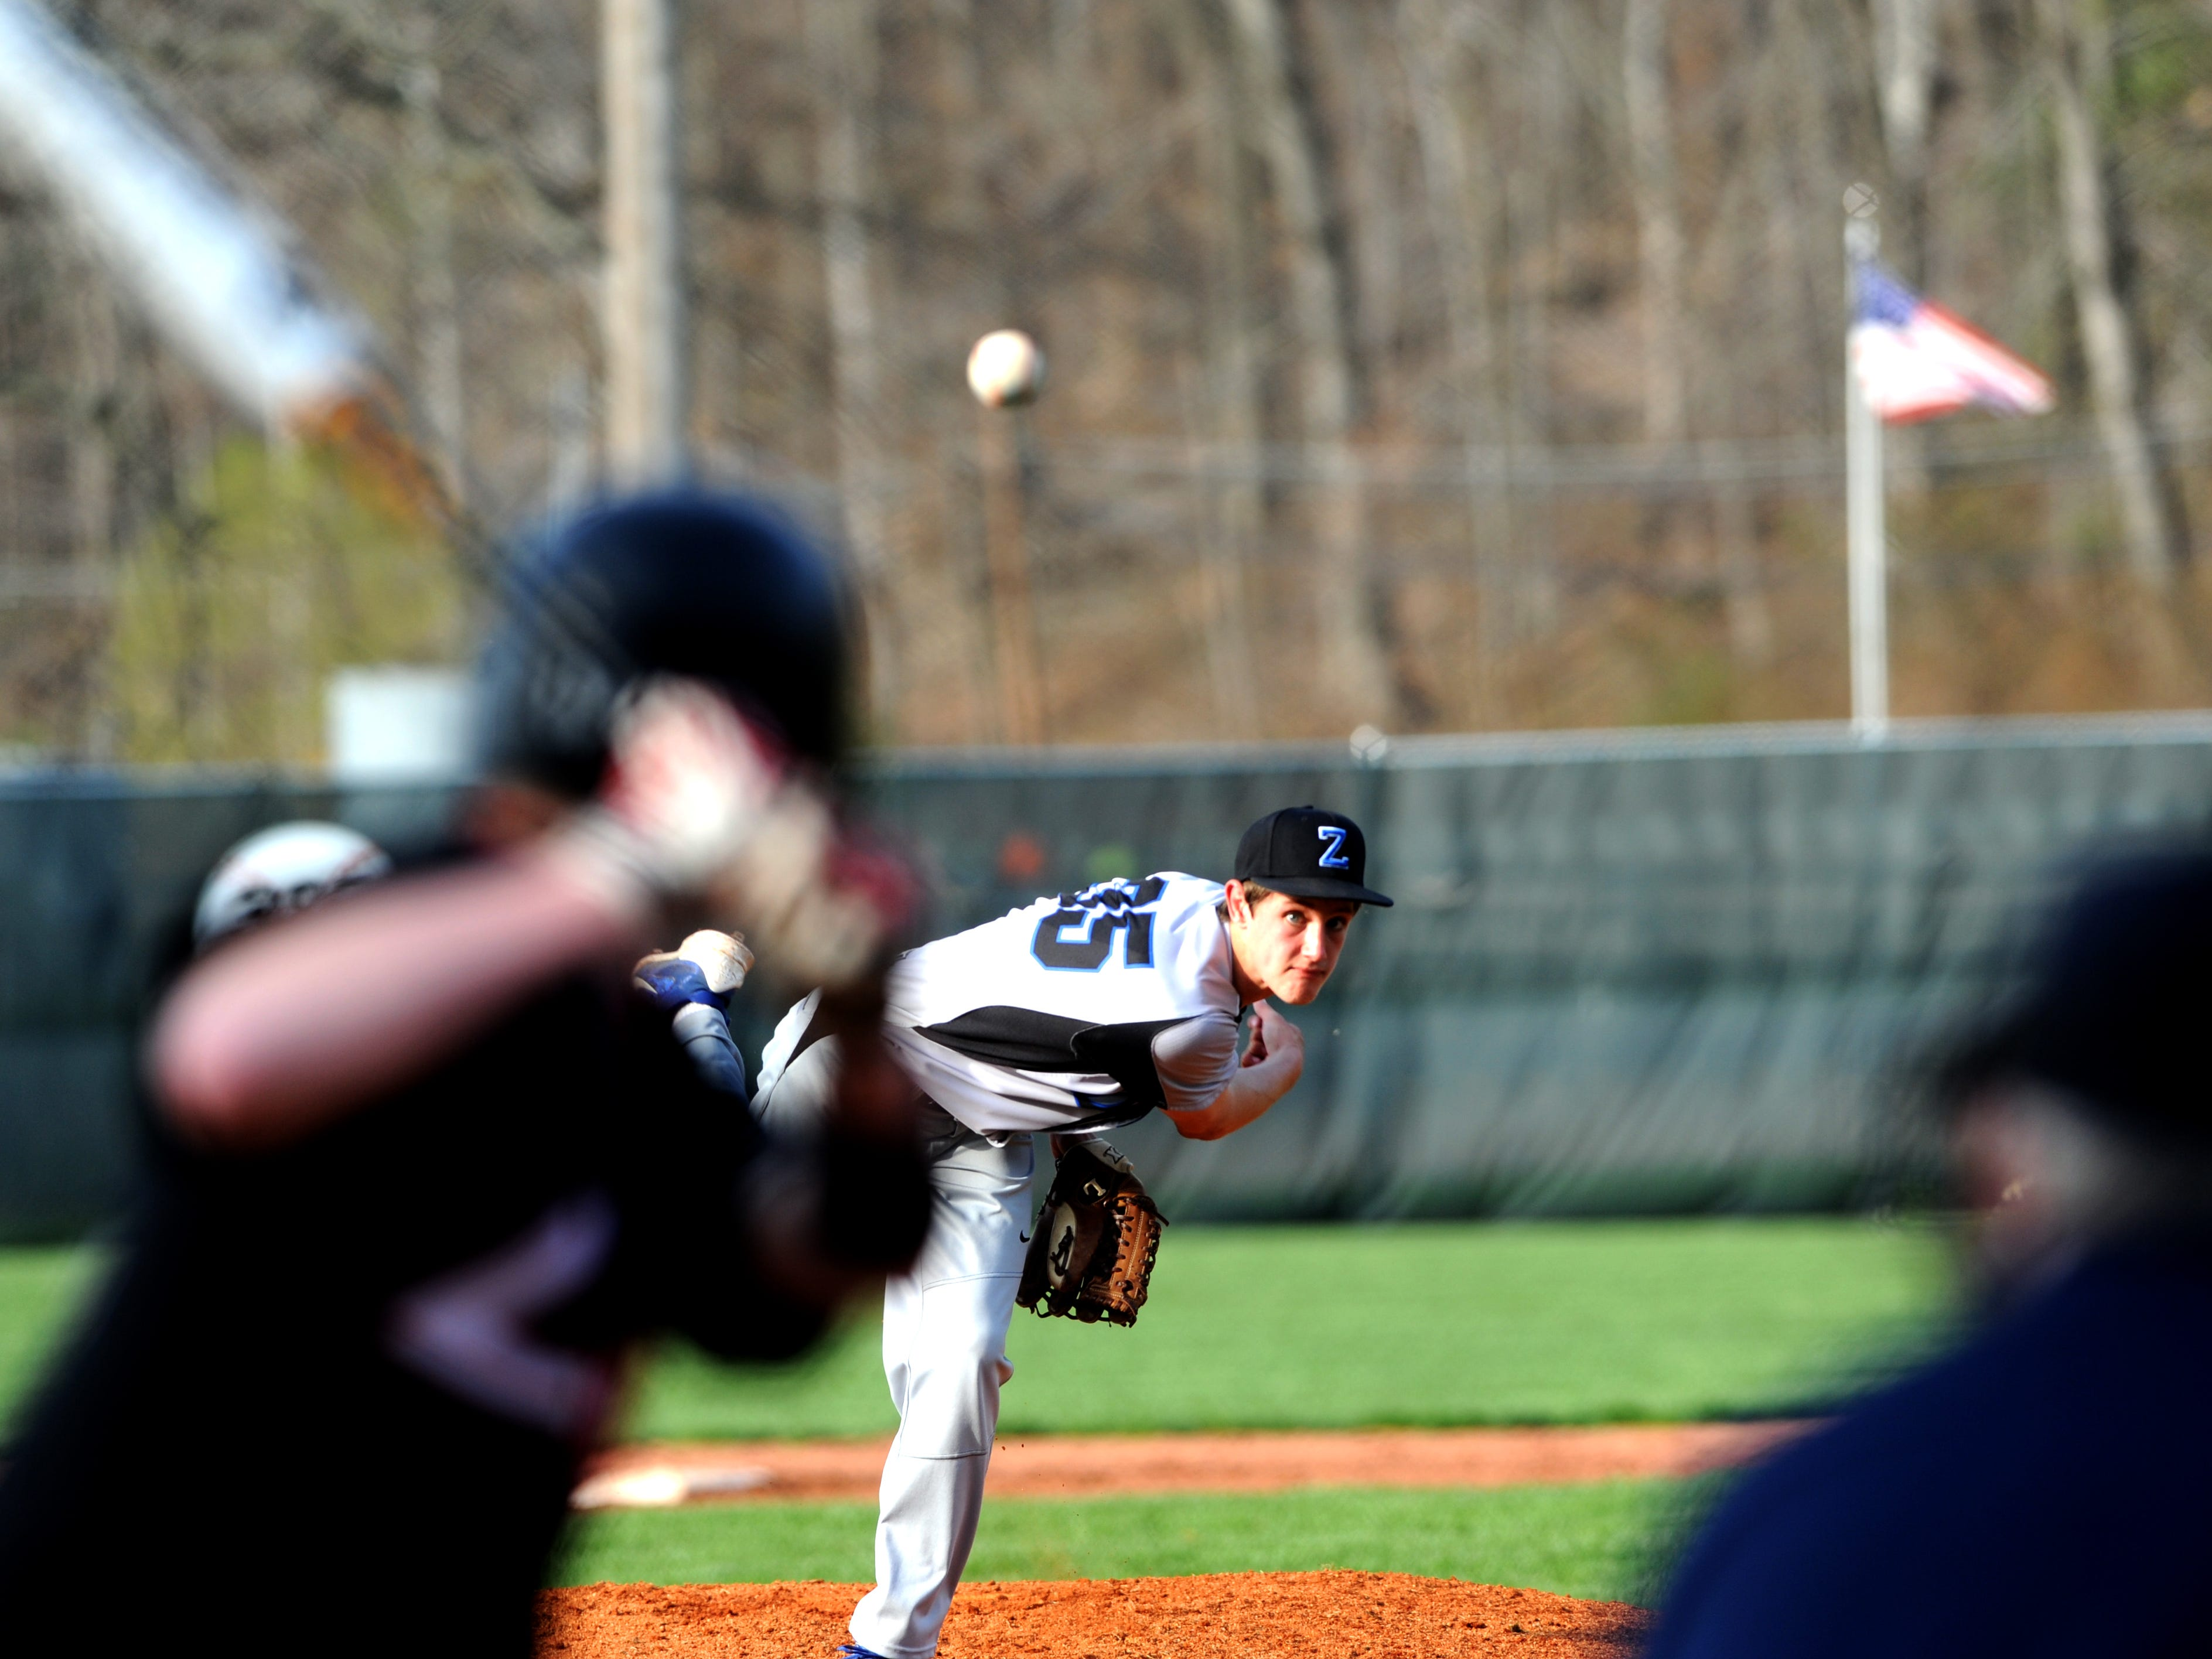 Zanesville's Caden Mumaw fires a pitch during the Blue Devils' 3-2 loss to Coshocton at Lake Park. Mumaw allowed one earned run Friday in 51/3 innings.